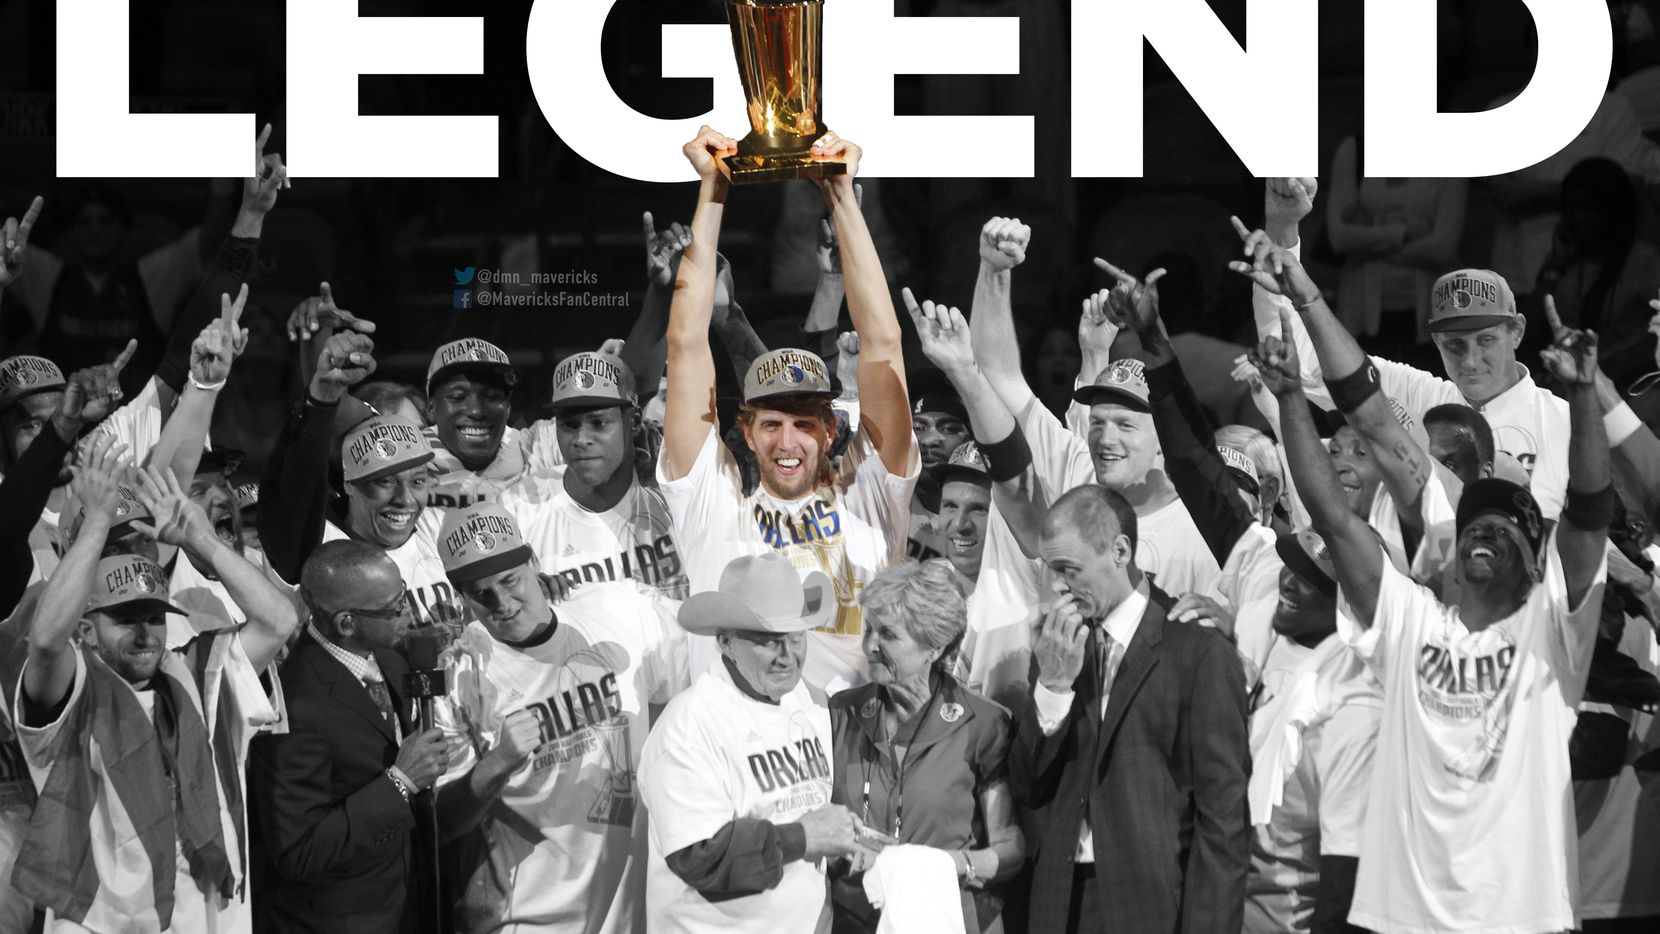 Illustration by Joshua Friemel. File photo: The Mavericks celebrate with the Larry O'Brien Trophy after winning Game 6 of the 2011 NBA finals against the Miami Heat at American Airlines Arena in Miami on June 12, 2011. (Vernon Bryant/The Dallas Morning News)